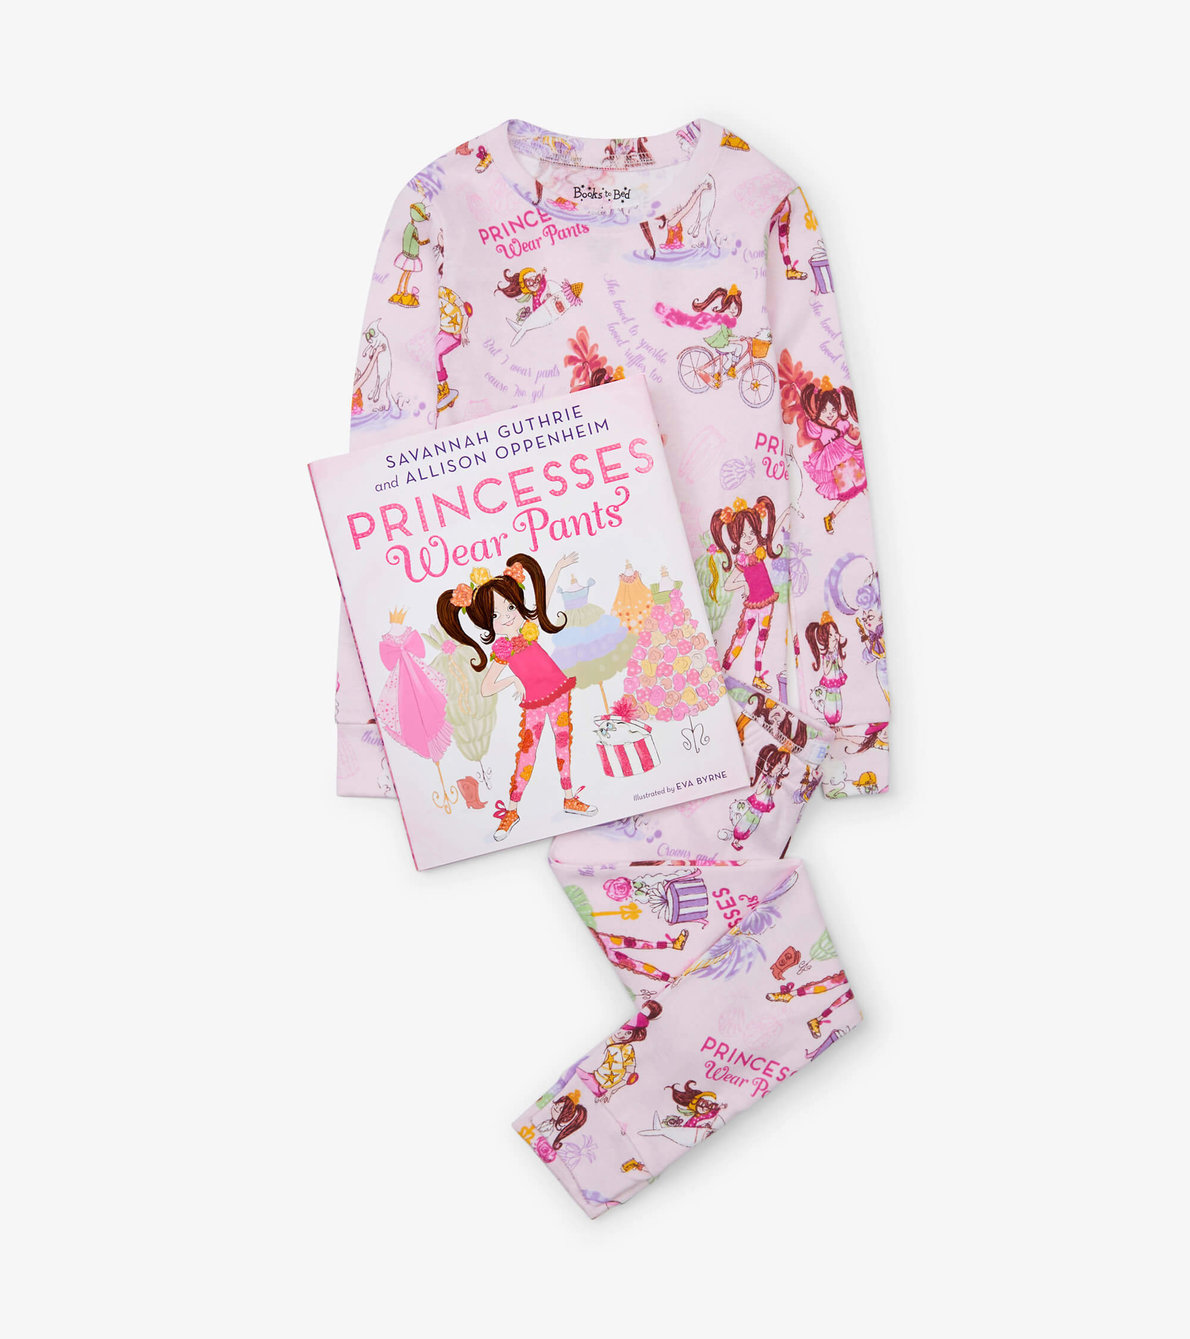 View larger image of Princesses Wear Pants Book and Pajama Set